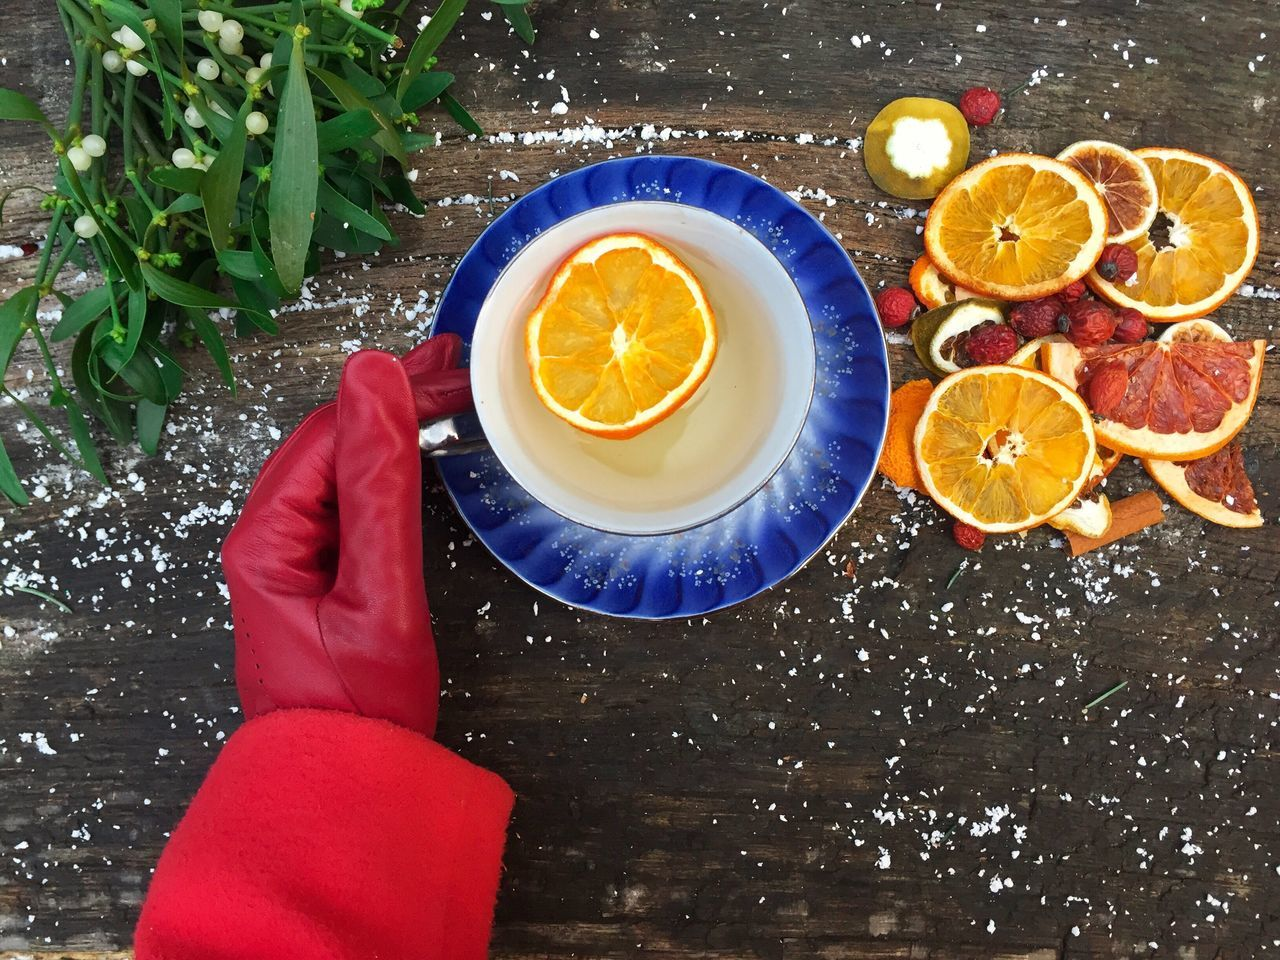 Woman hands wearing red gloves holding mug of orange tea placed on snowy table decorated with mistletoe and orange slices Table One Person Human Hand Day Winter Snow Cold Gloves Red Hand Woman Table Drink Mistletoe Oranges Tea Hot Drink Red Gloves Cup Glass Season  Outdoors Orange Tea EyeEmNewHere